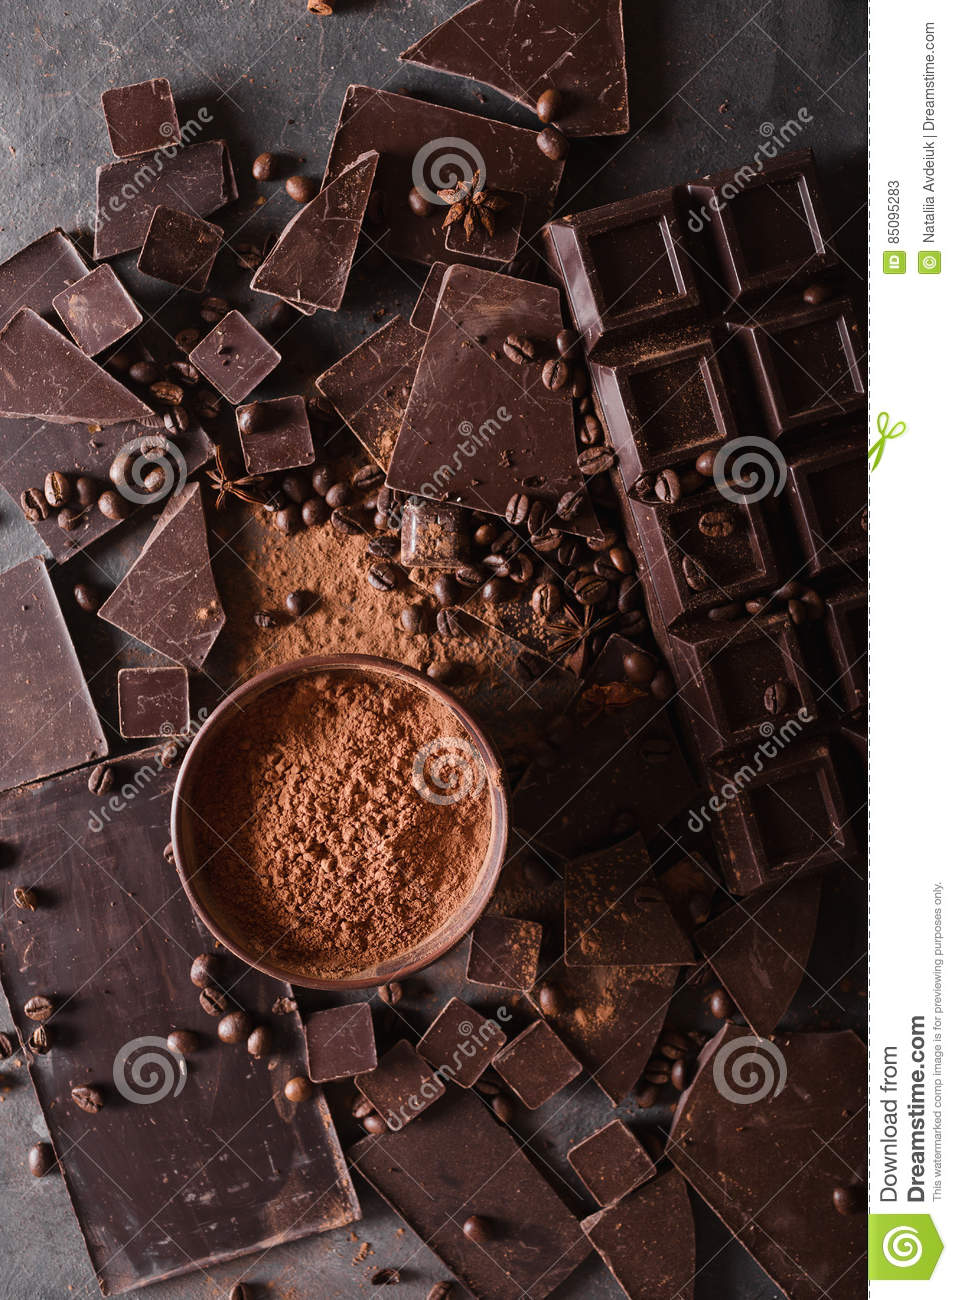 Chocolate chunks and cocoa powder. Coffee beans Chocolate bar pieces. Large bar of chocolate on gray abstract background.